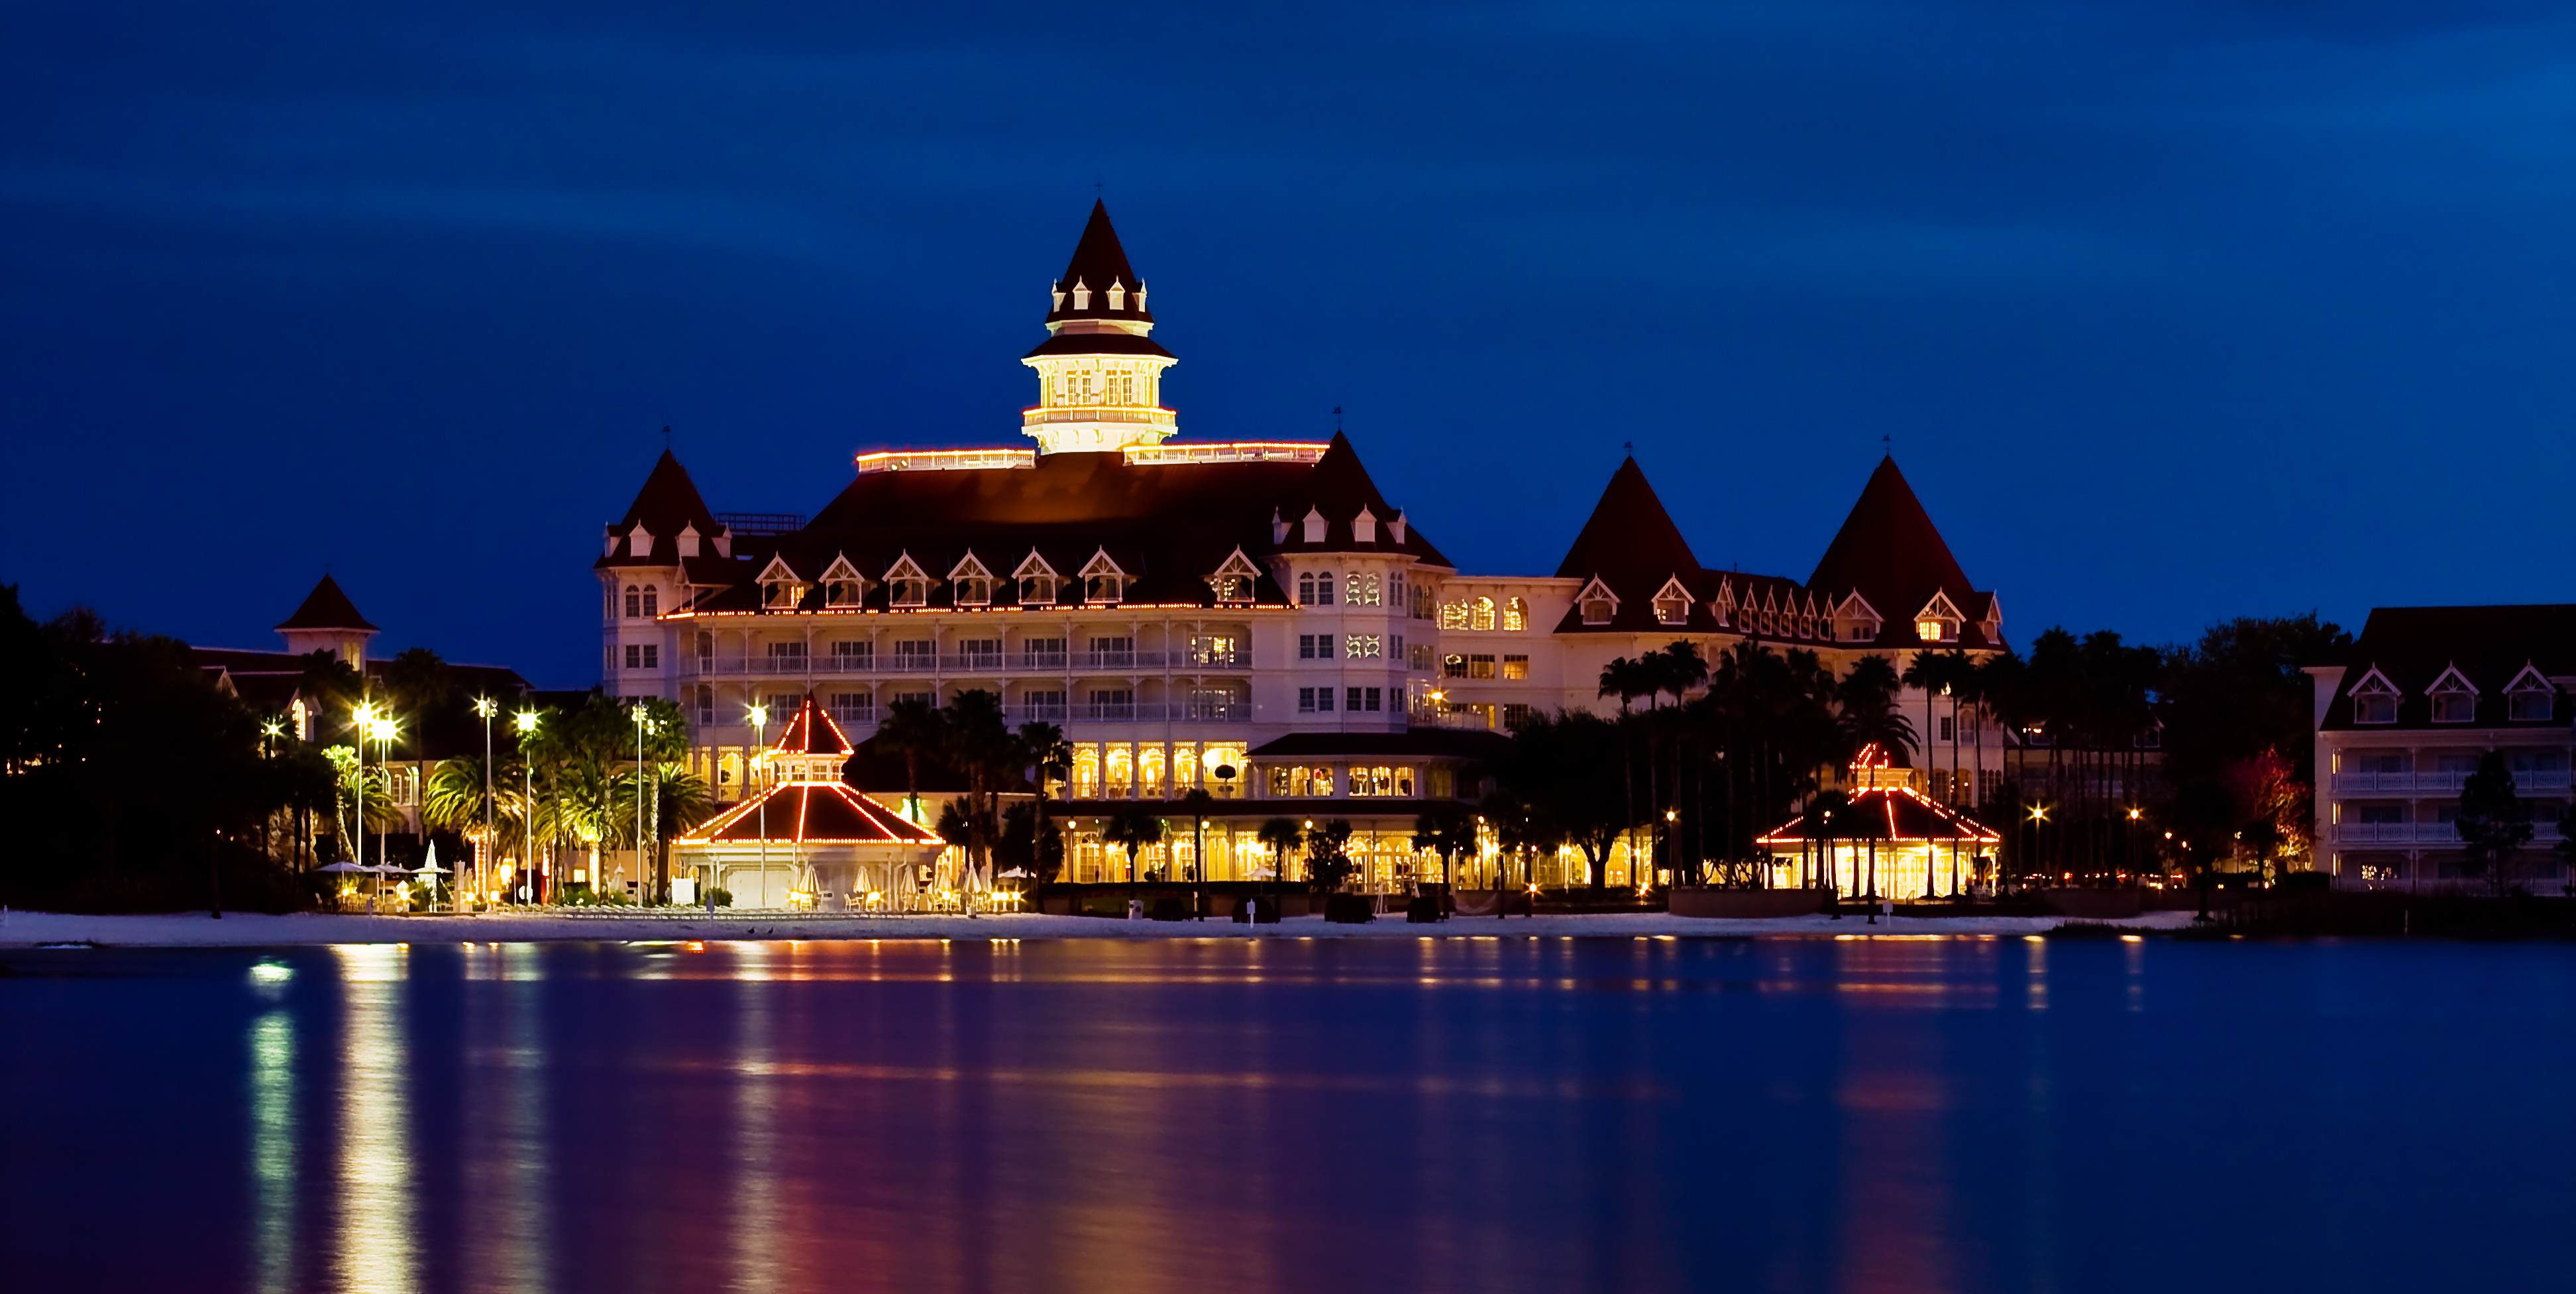 The grand floridian resort and spa